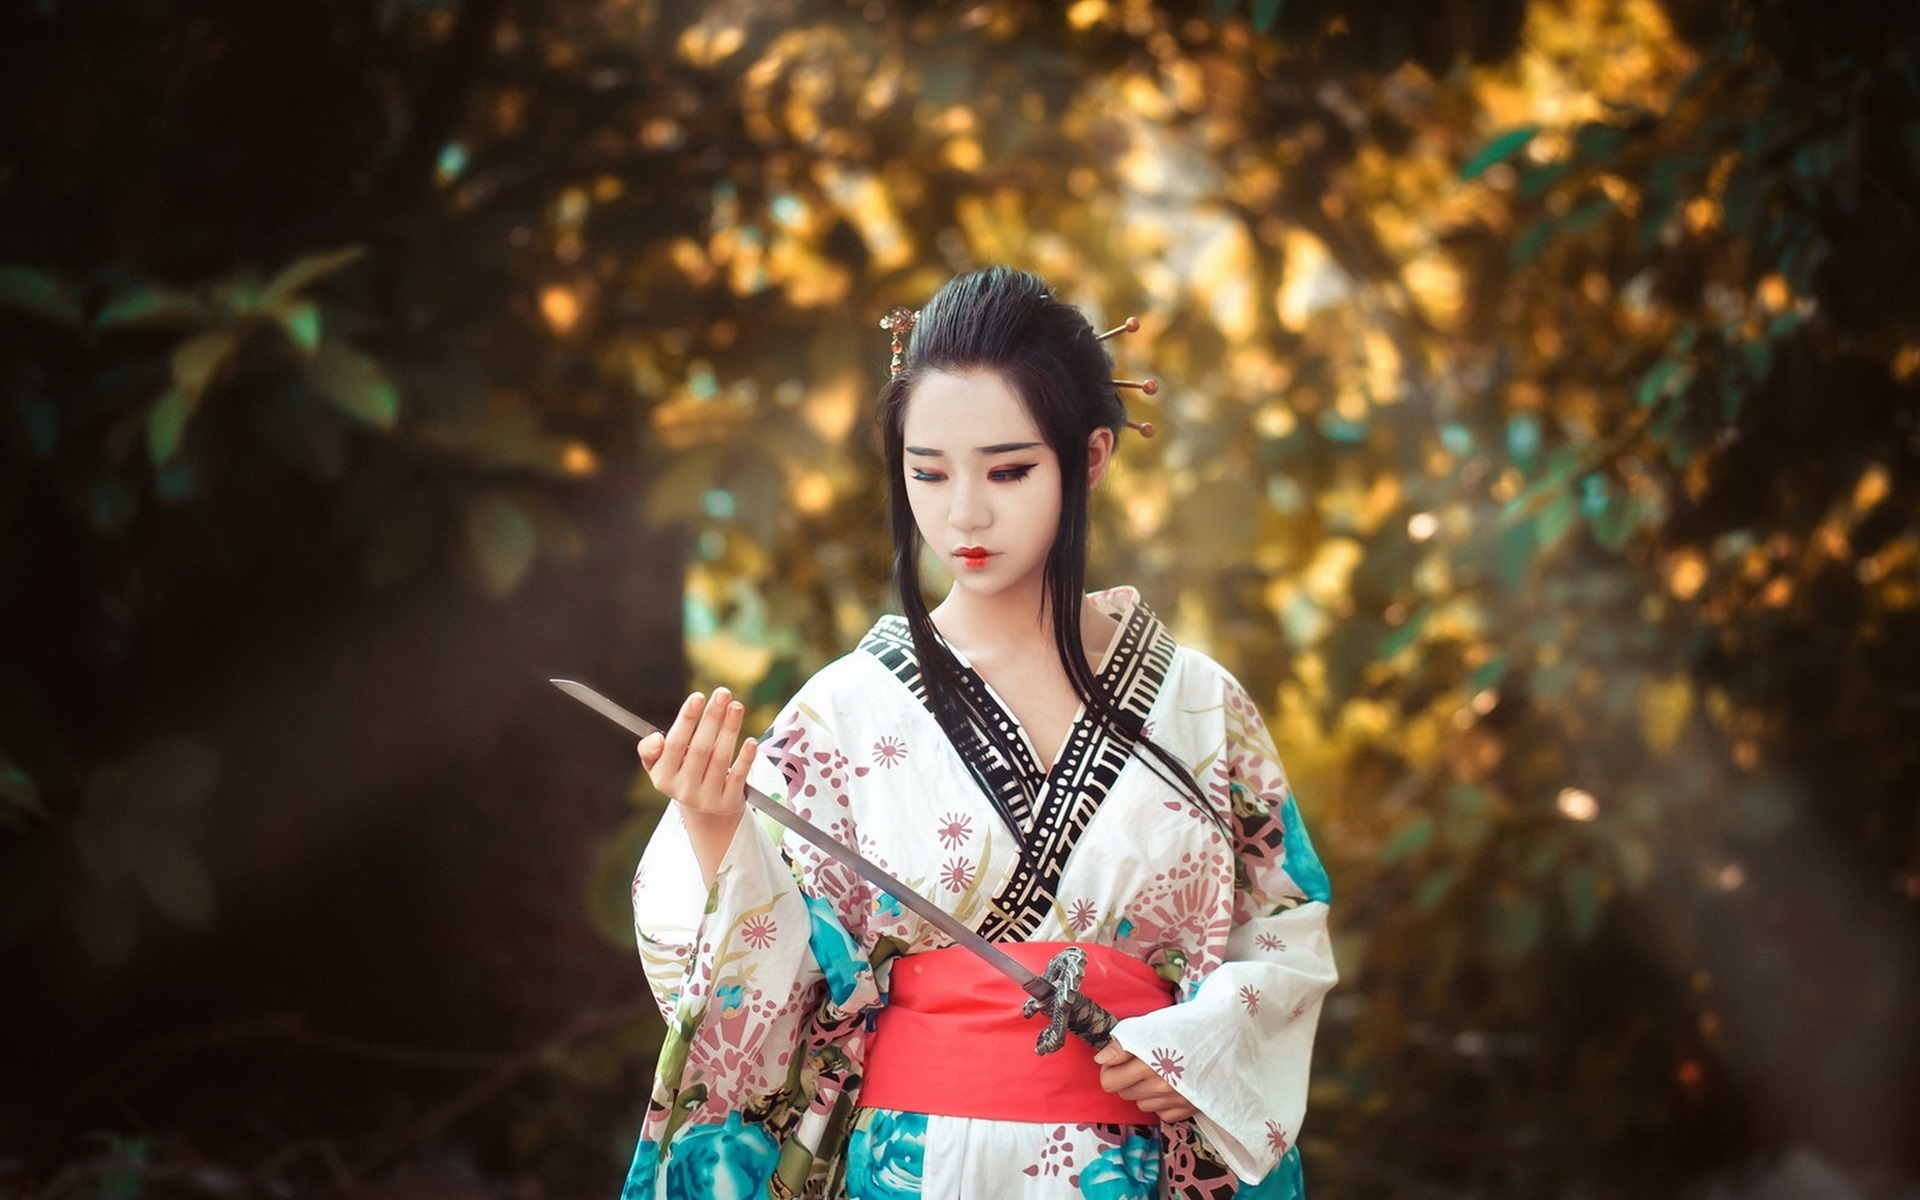 Wallpaper asian girl japanese sword 1920x1200 hd picture - Girl with sword wallpaper ...